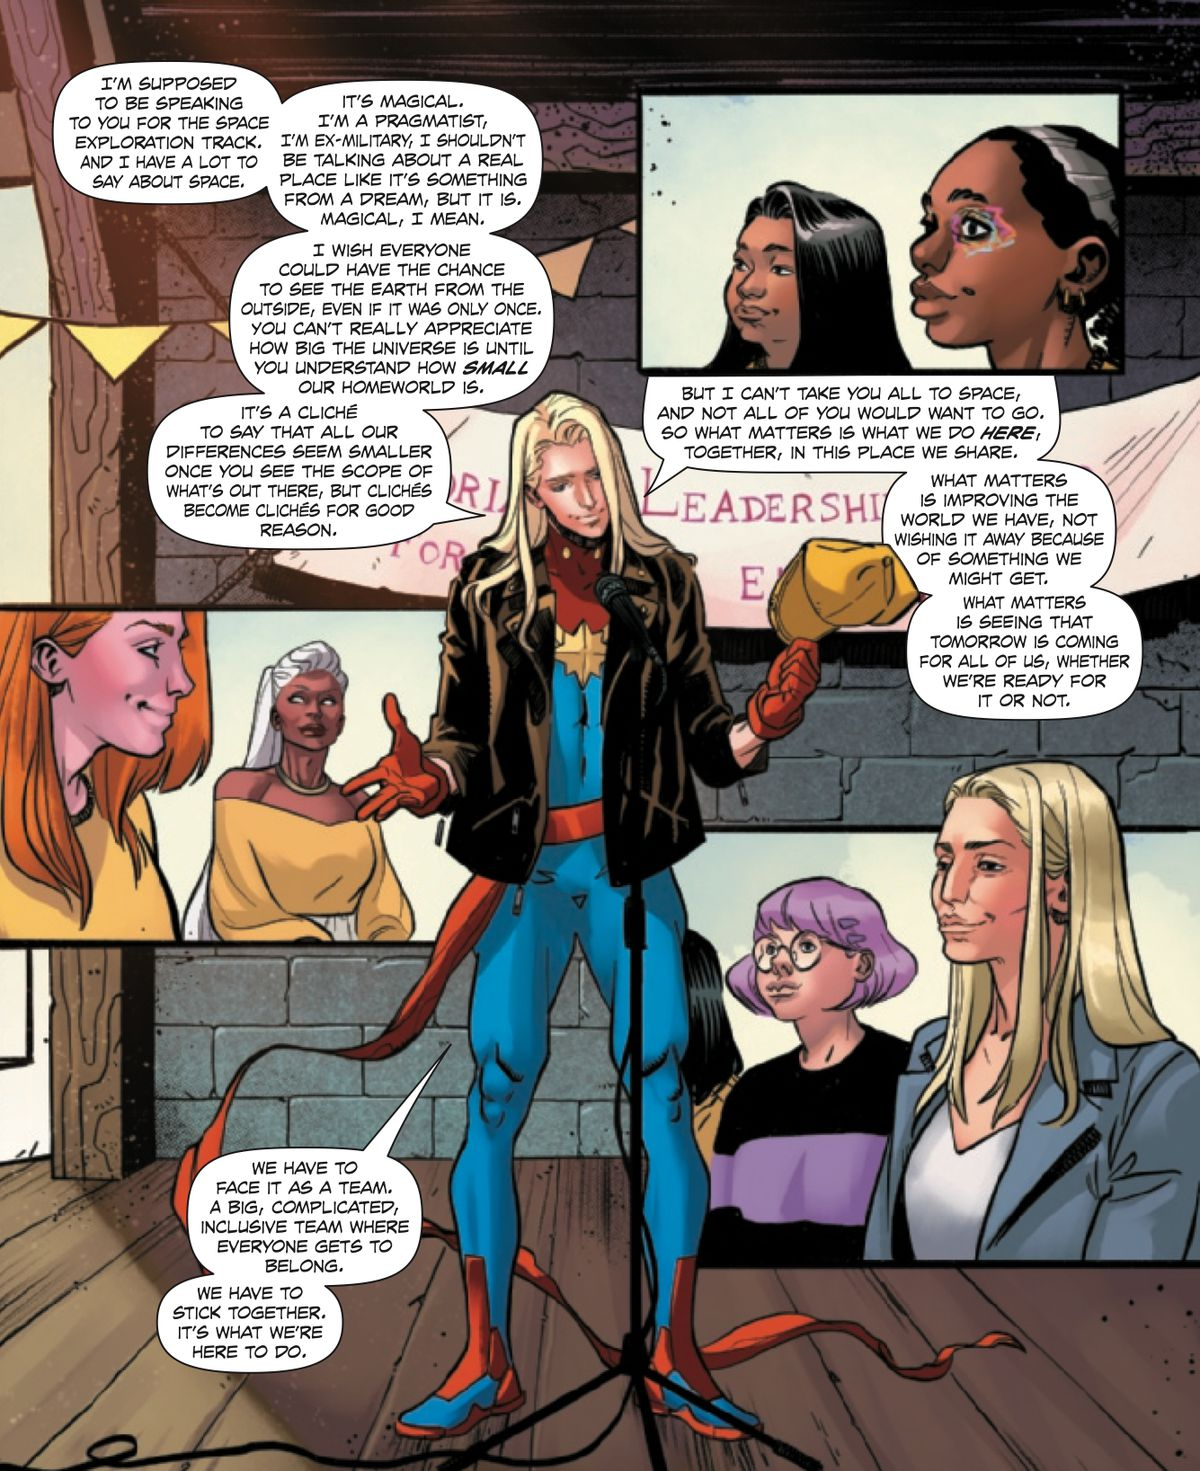 Carol Danvers gives a speech about how space is great, like, super great, but it's imperative that don't think it's SO cool that we forget to solve problems on Earth, in Fearless #4, Marvel Comics (2019).